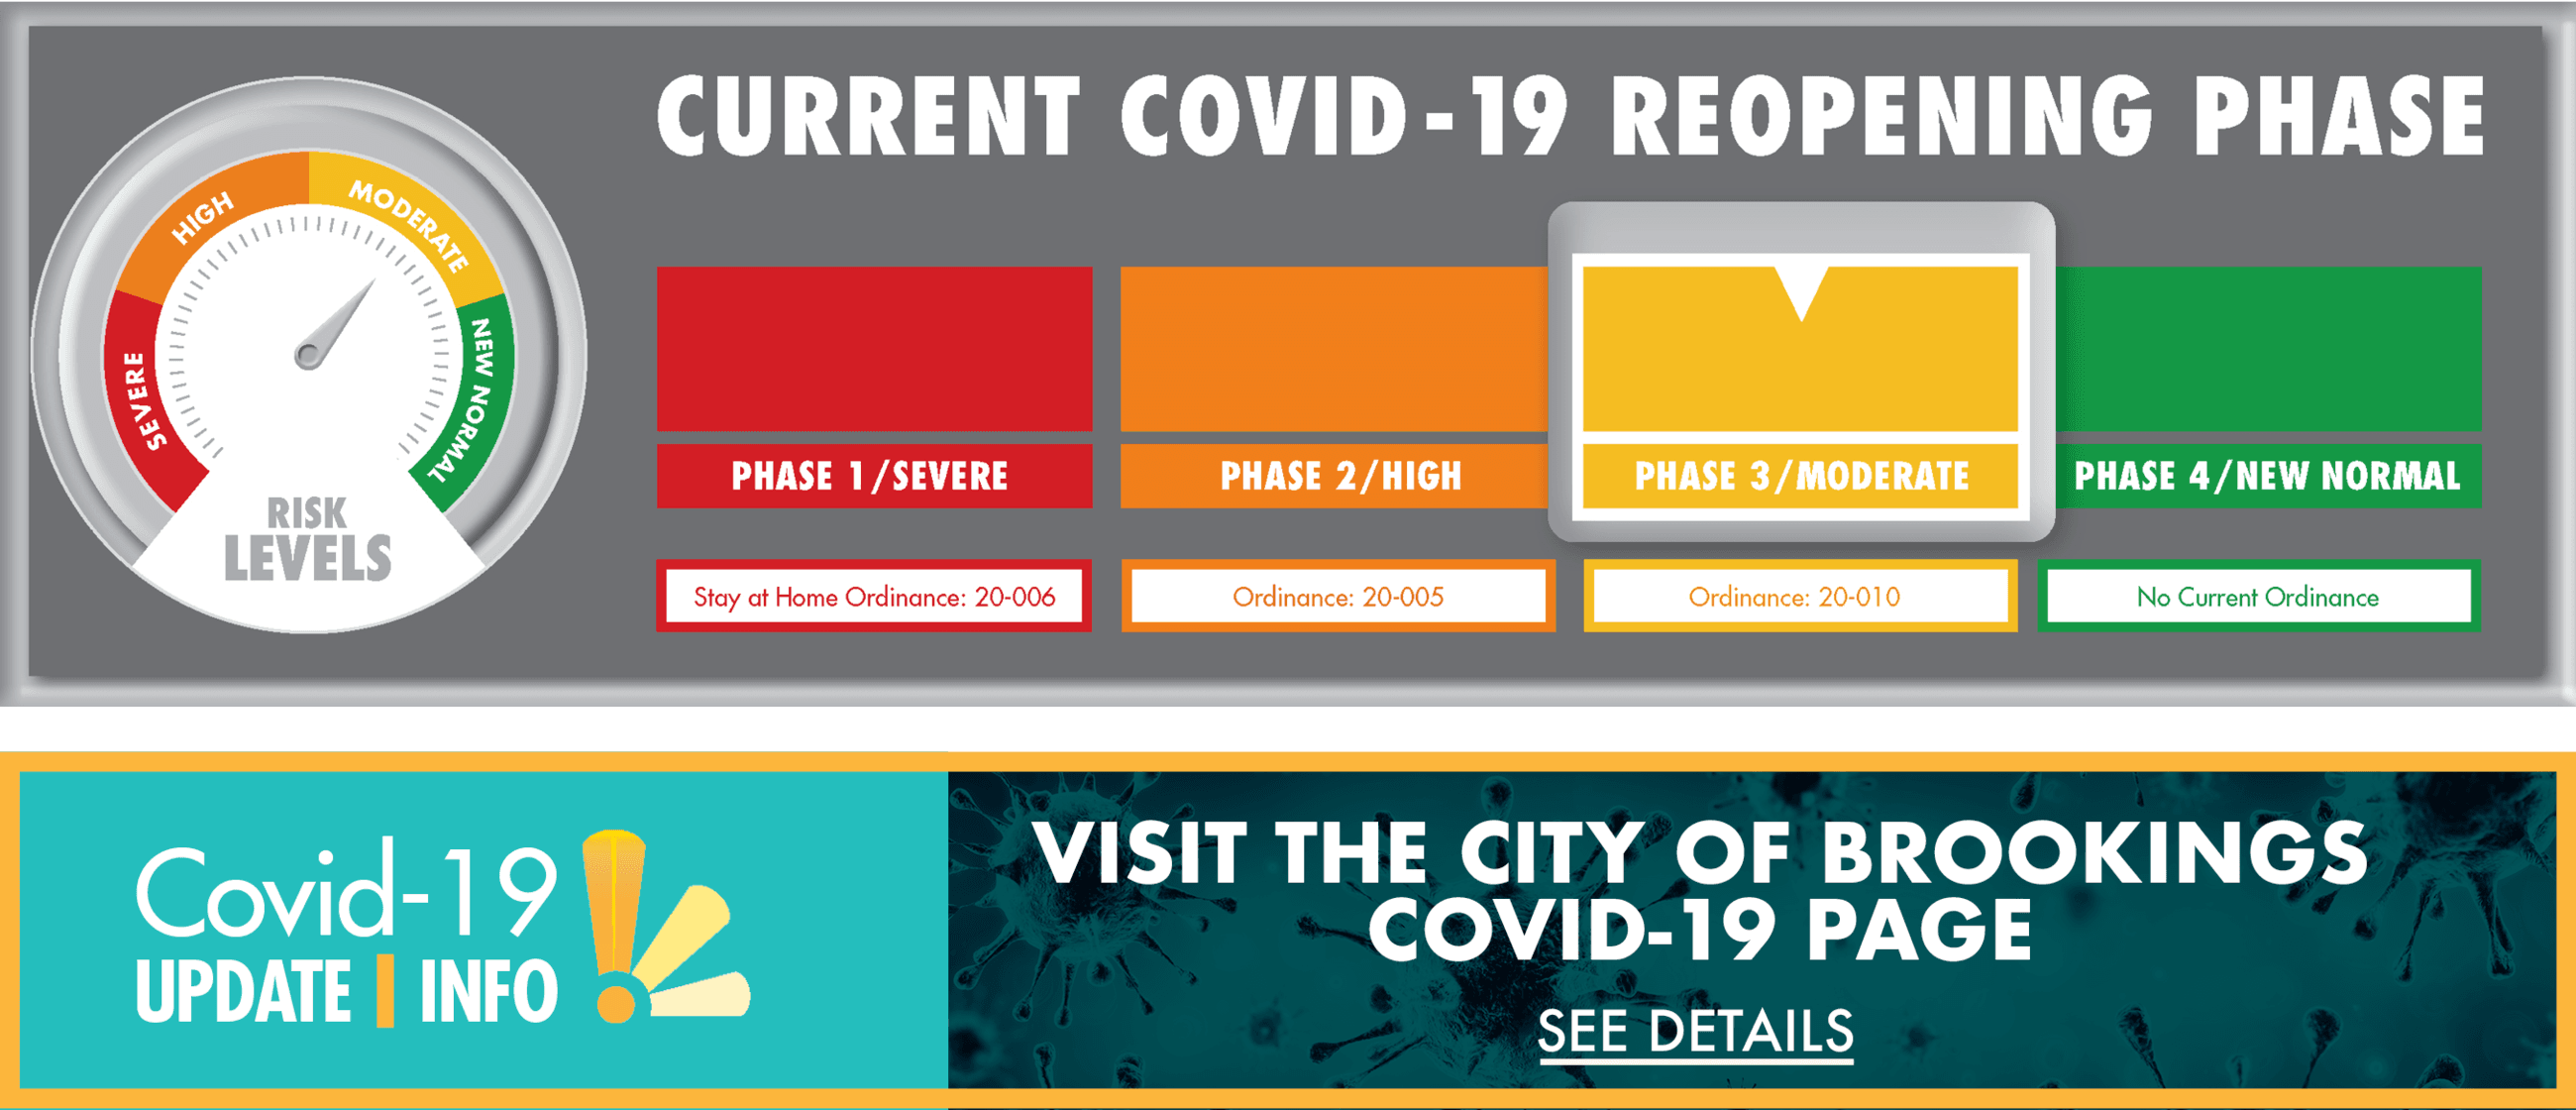 COVID 19 Update and information: Visit the City of Brookings COVID-19 Page; See Details (Link)